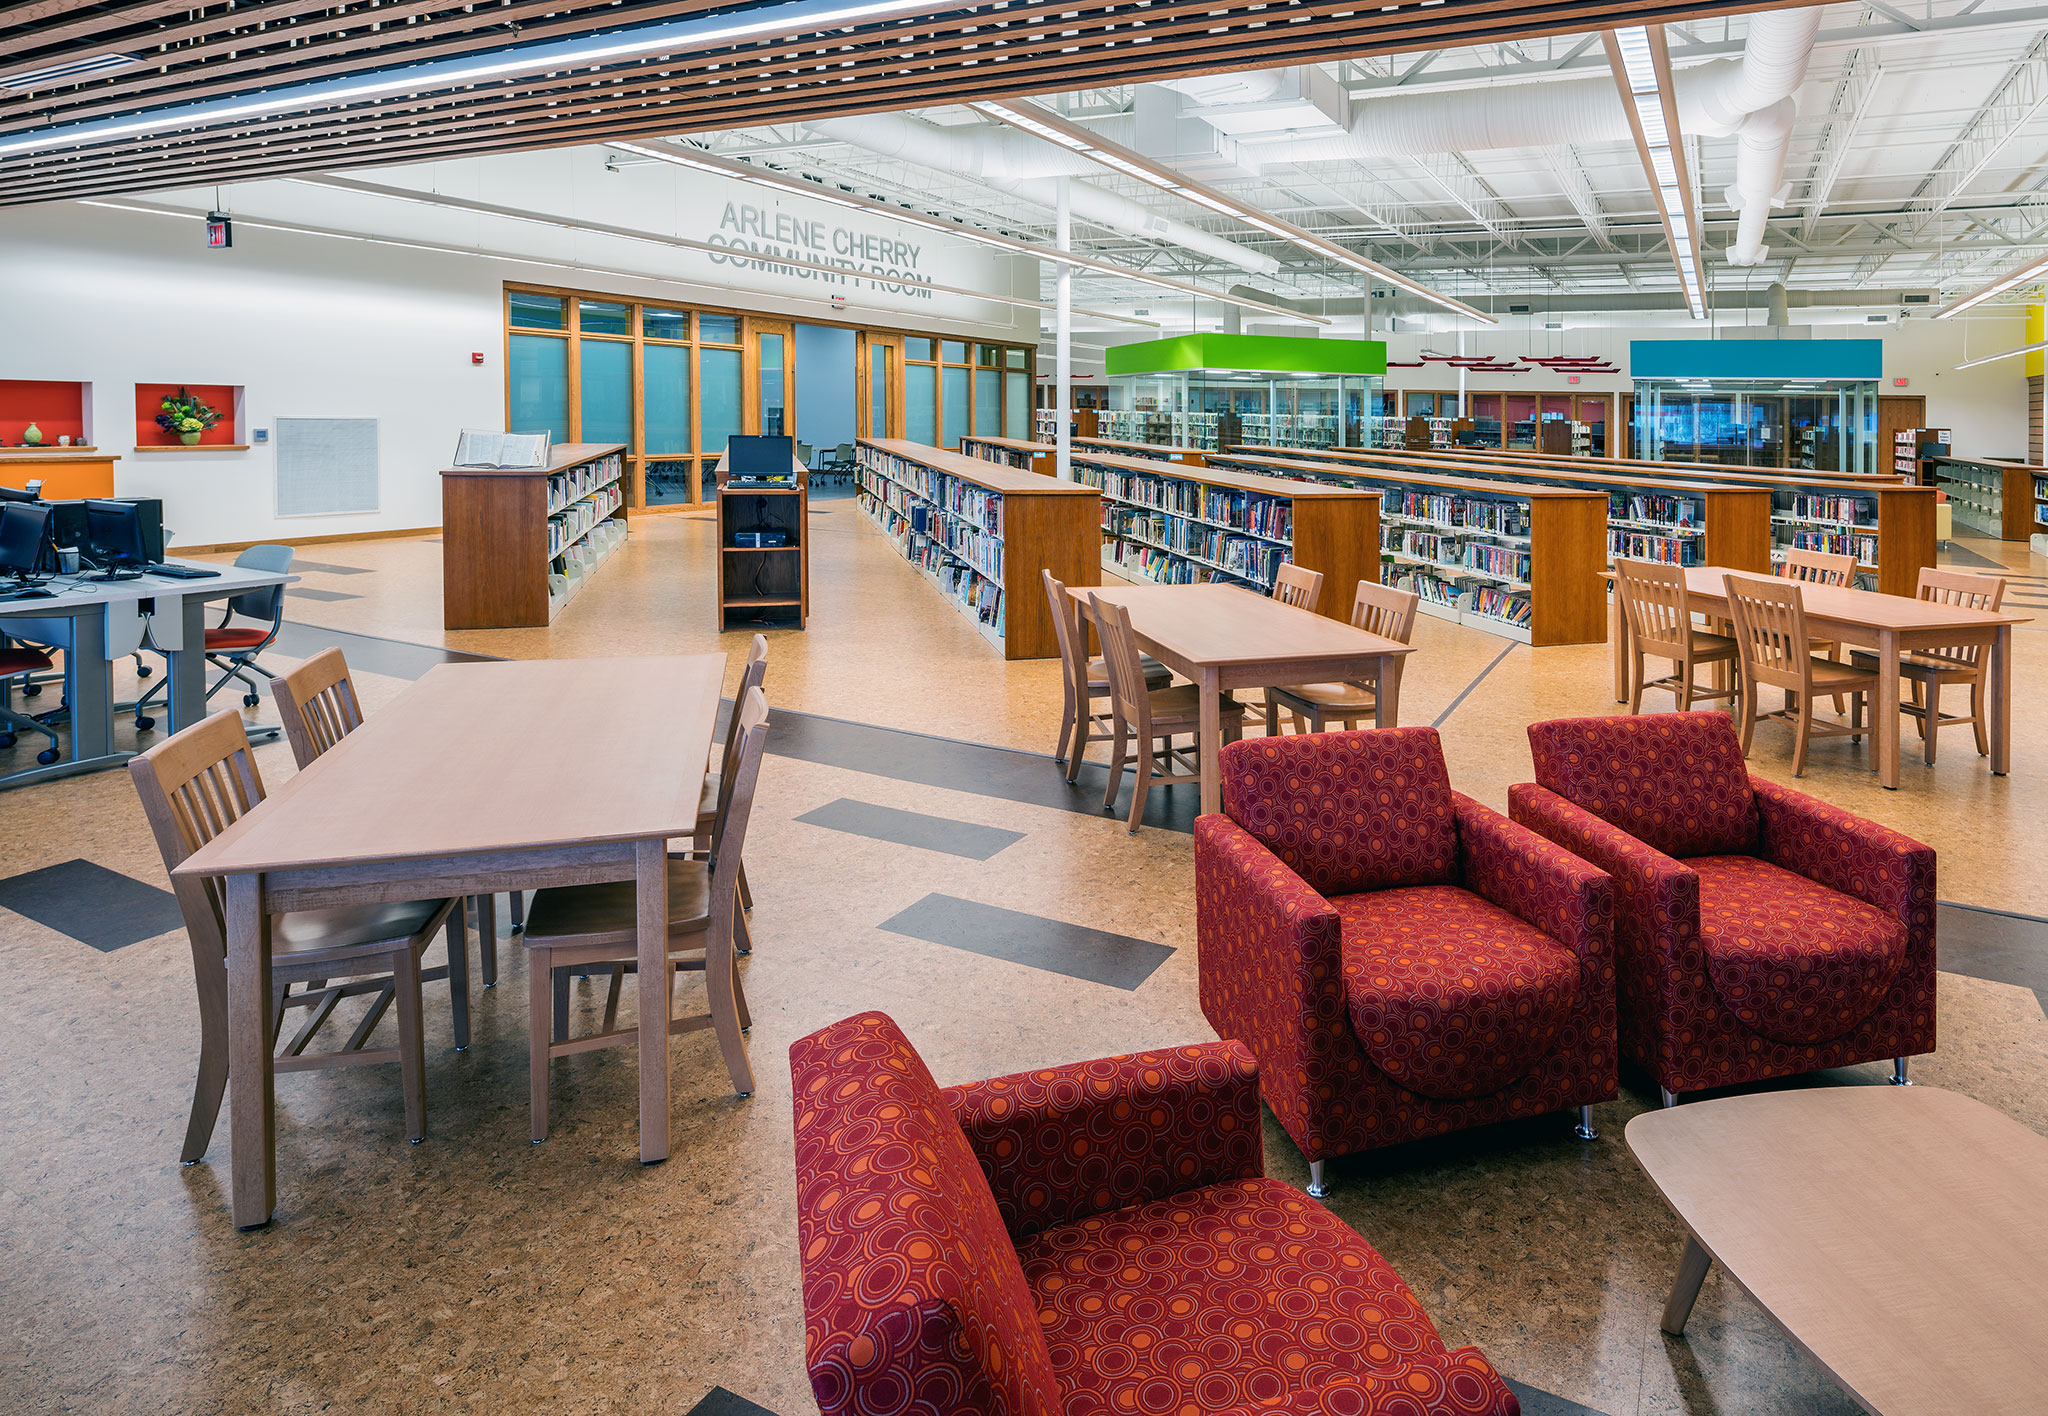 Cabot_library07_TeaCup_CrossRoads_library_corbett_norristown_experience-center.jpg